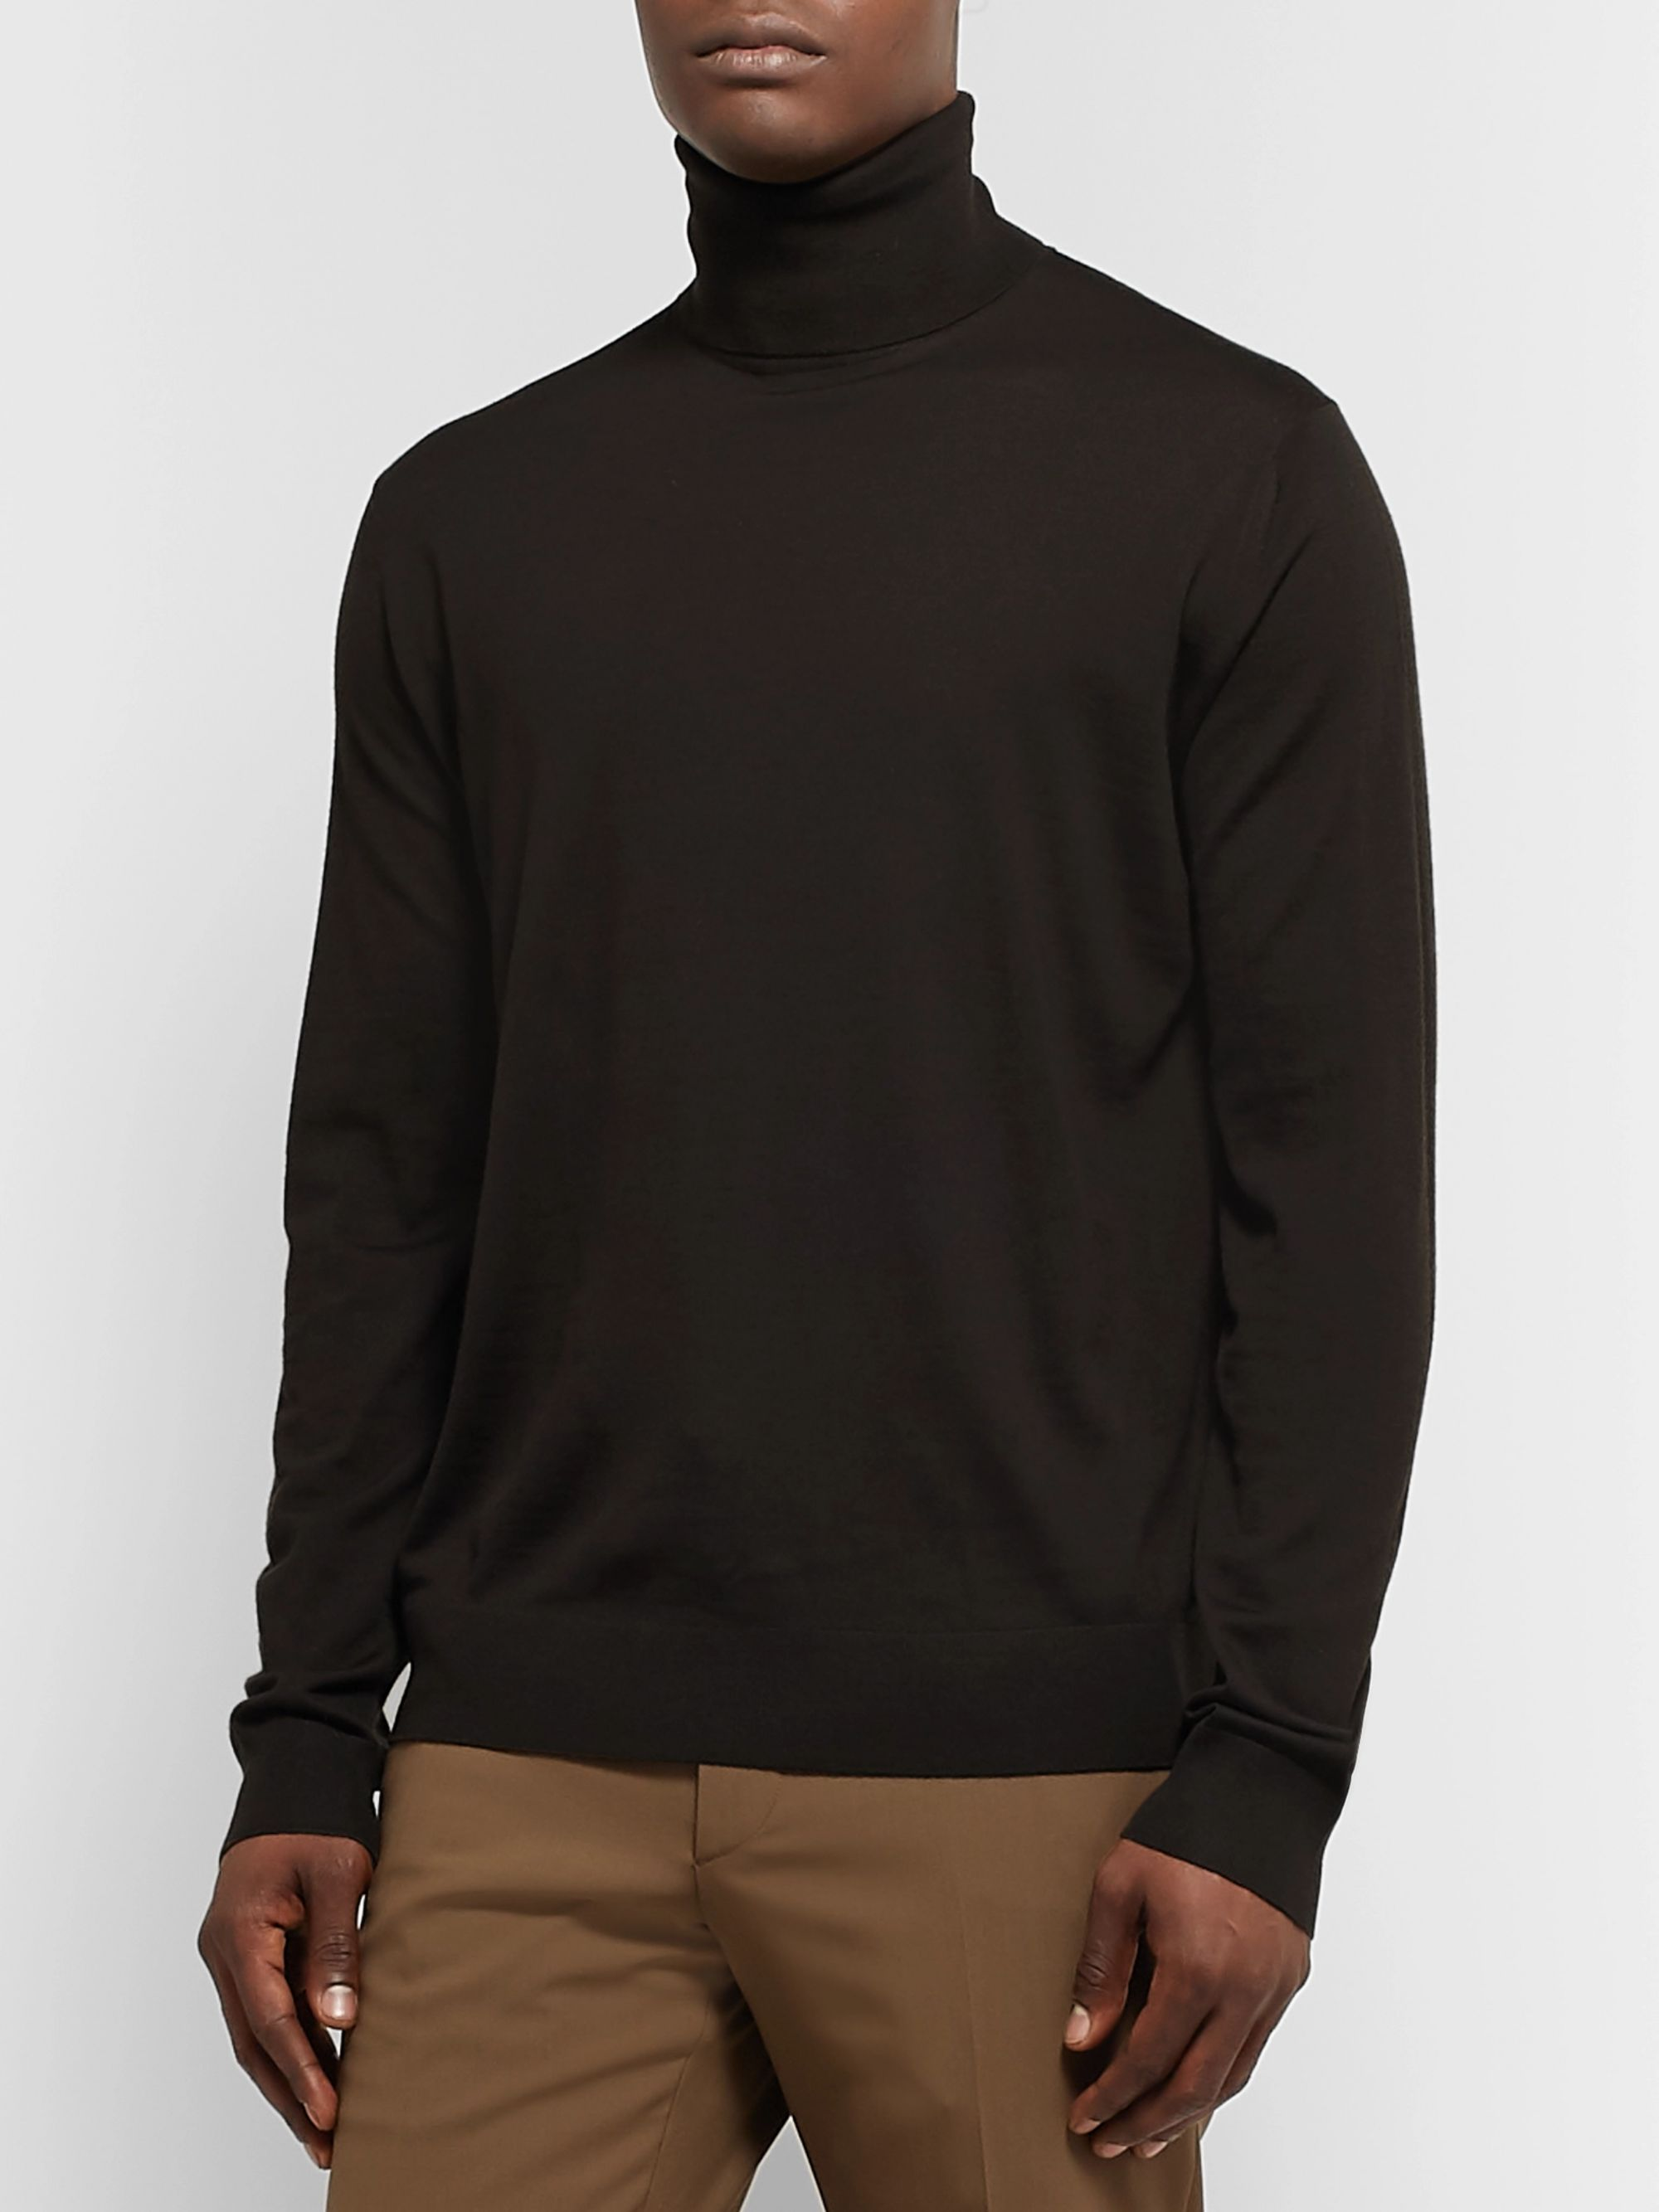 Prada Virgin Wool Rollneck Sweater